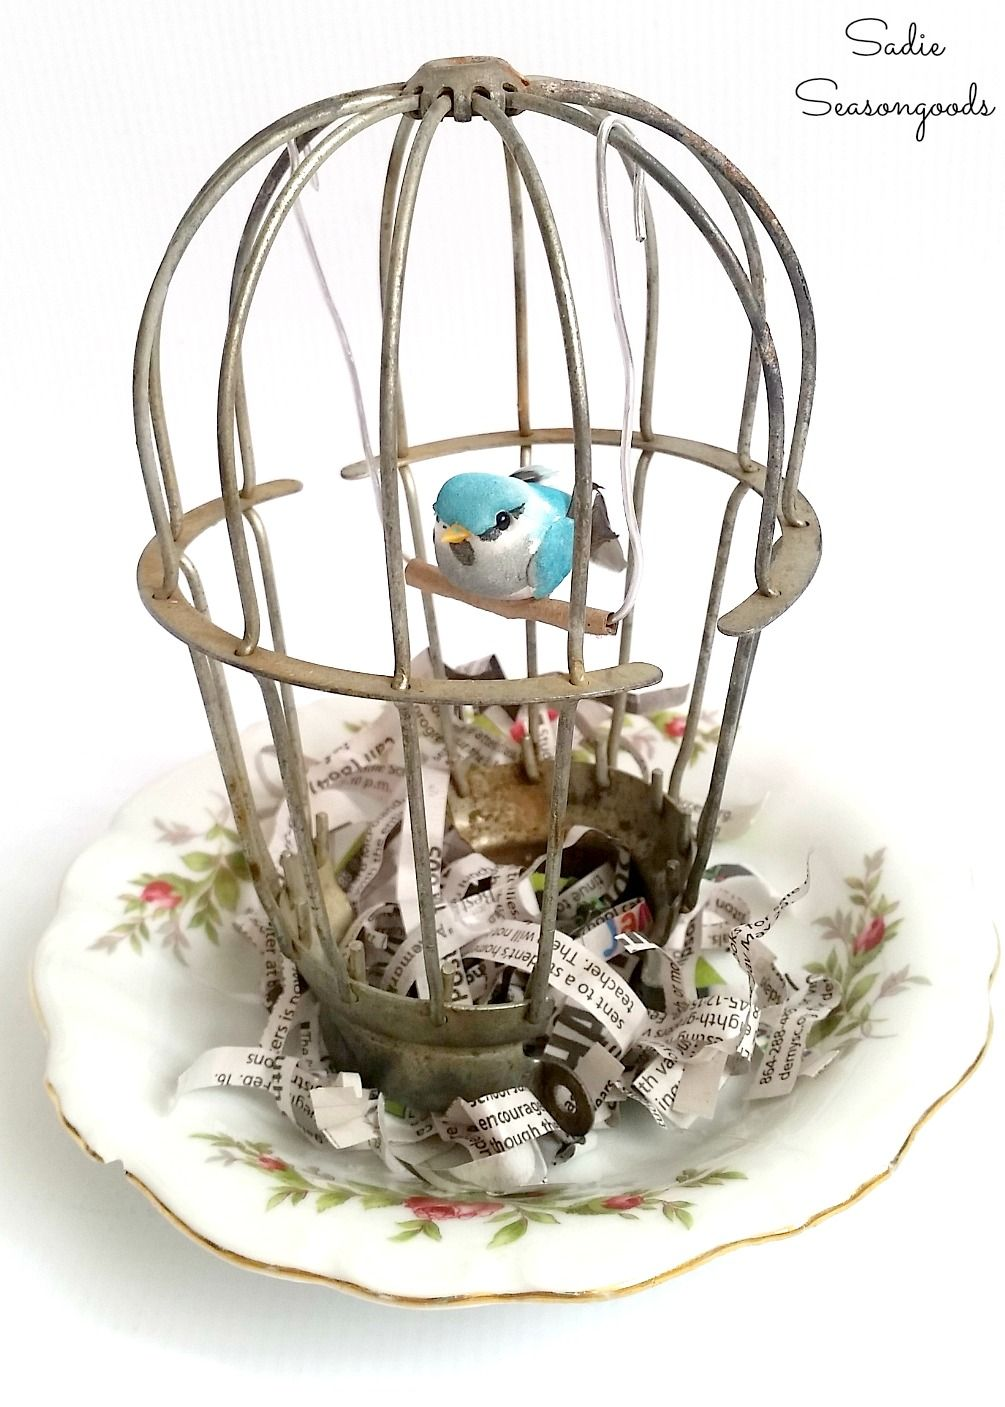 Birdcage Decor By Upcycling A Light Cage Industrial Light For Spring Bird Cage Decor Bird Cage Spring Decor Diy